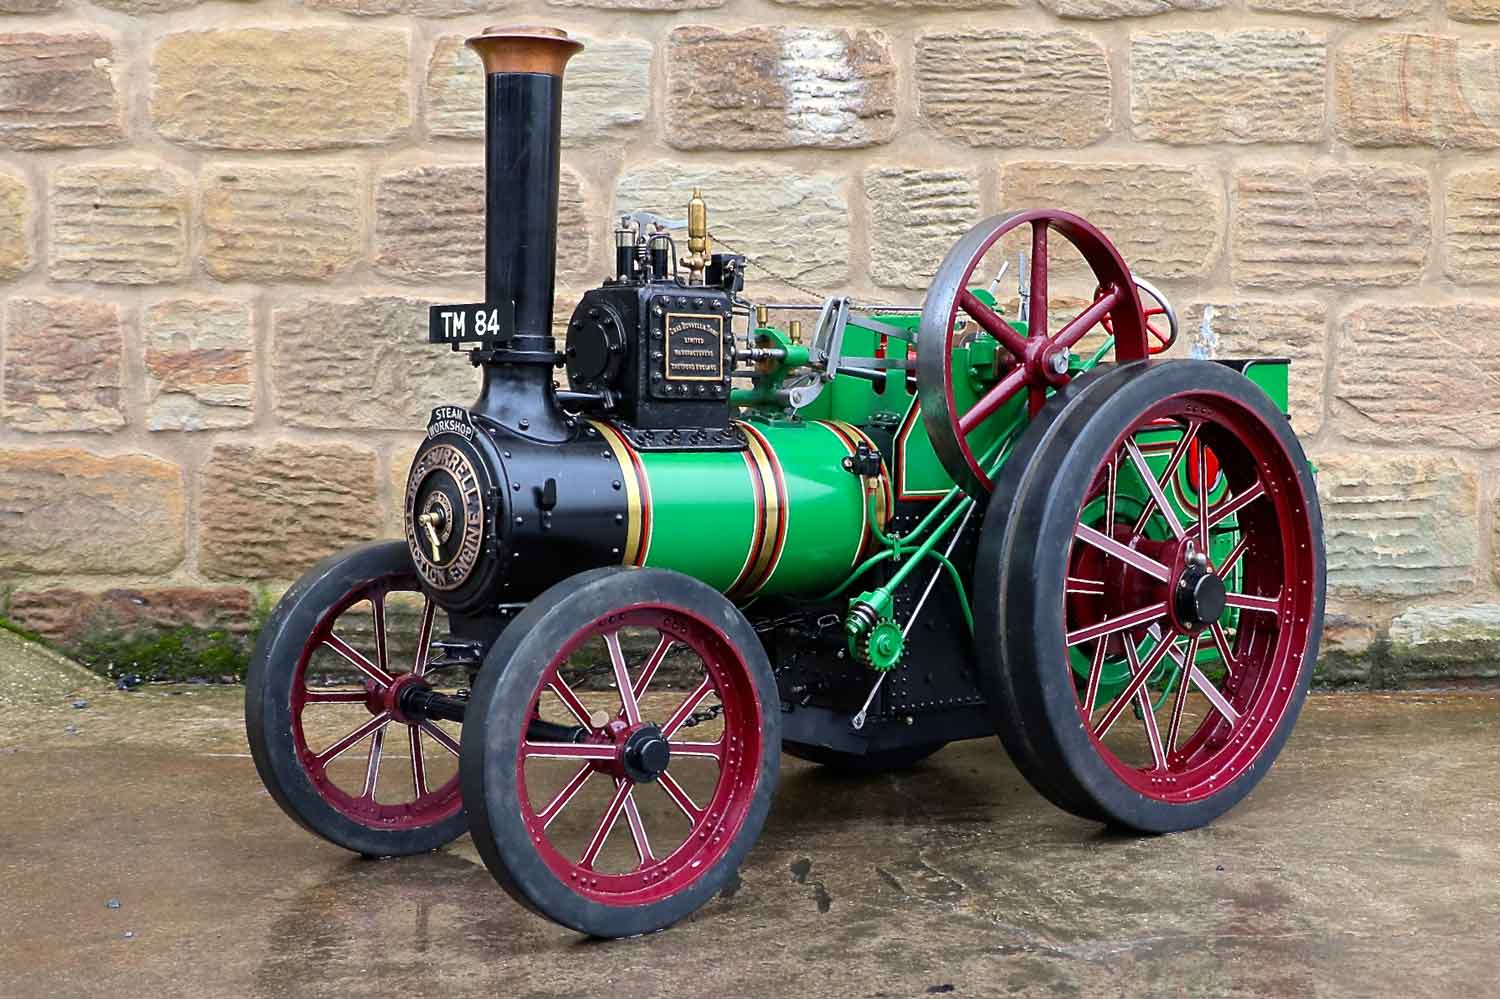 test 3-inch-Burrell-traction-engine-plastow-live-steam-for-sale-2